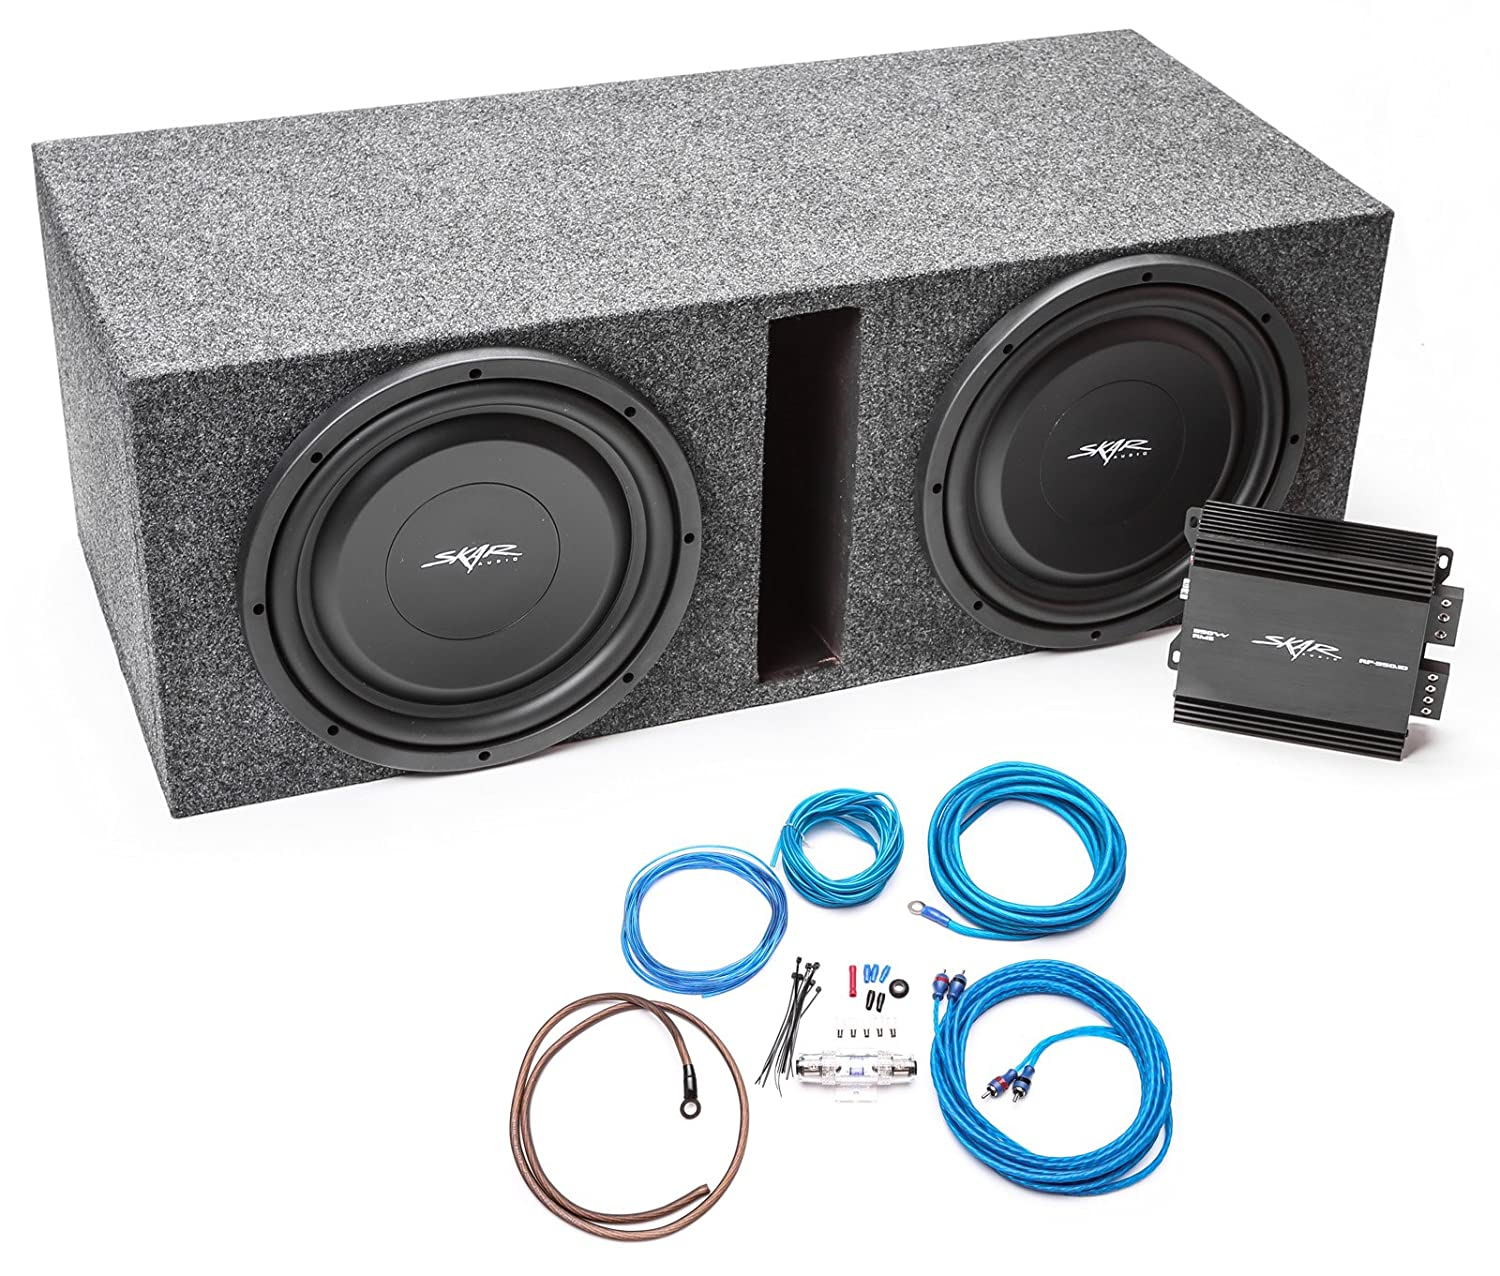 Skar Audio Dual 12 1000 Watt Complete Car Subwoofer Boss Kit2 8 Gauge Amplifier Wiring Kit Pair Vminnovations Bass Package With Ported Loaded Enclosure And Electronics